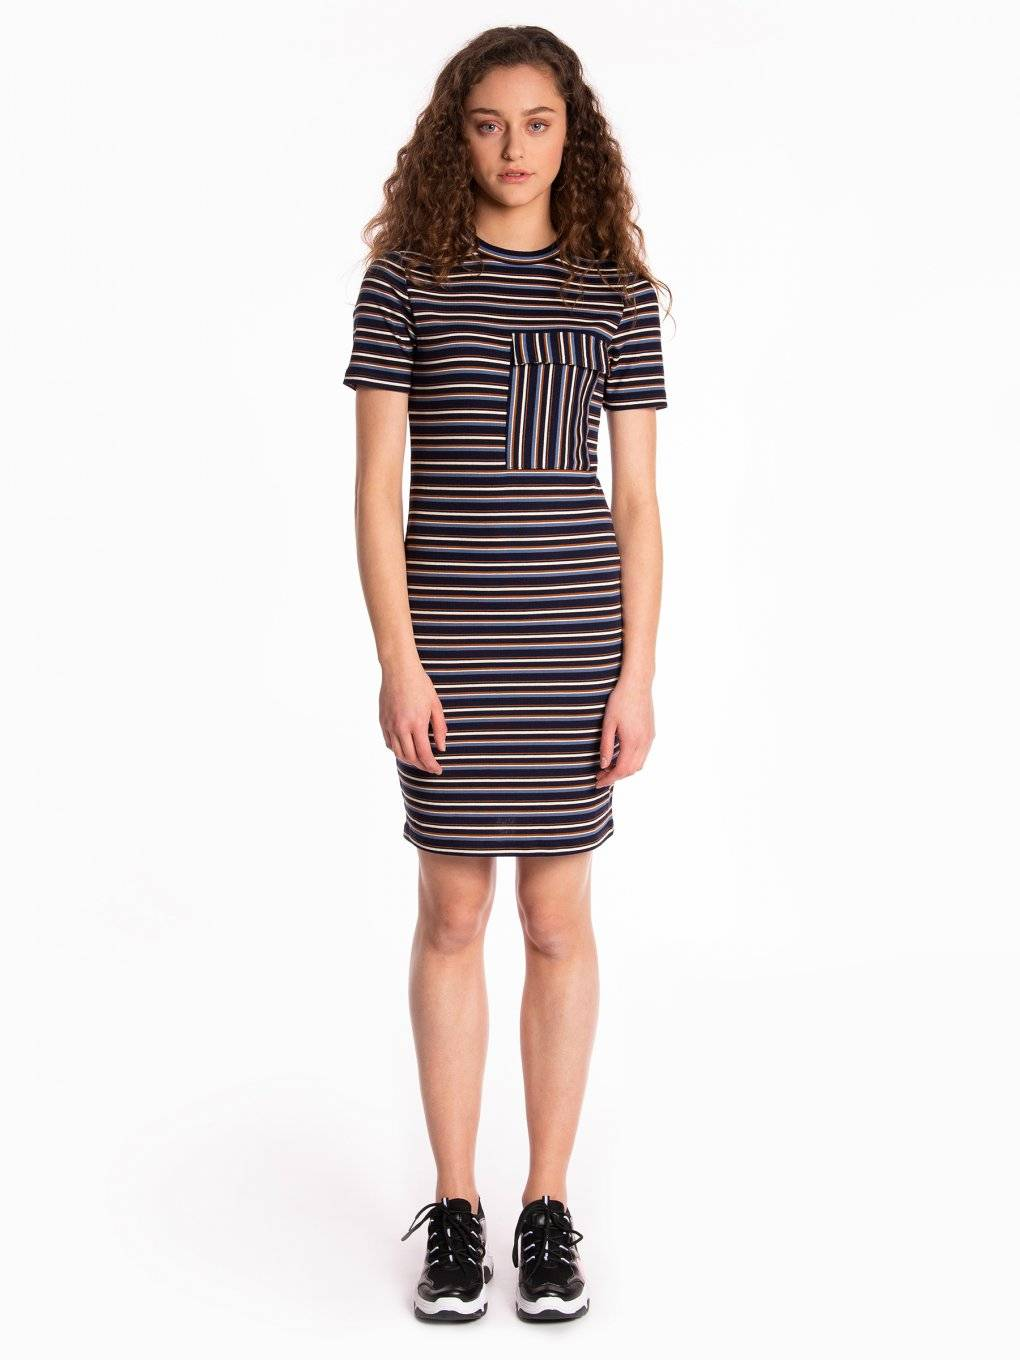 Striped bodycon dress with oversized chest pocket